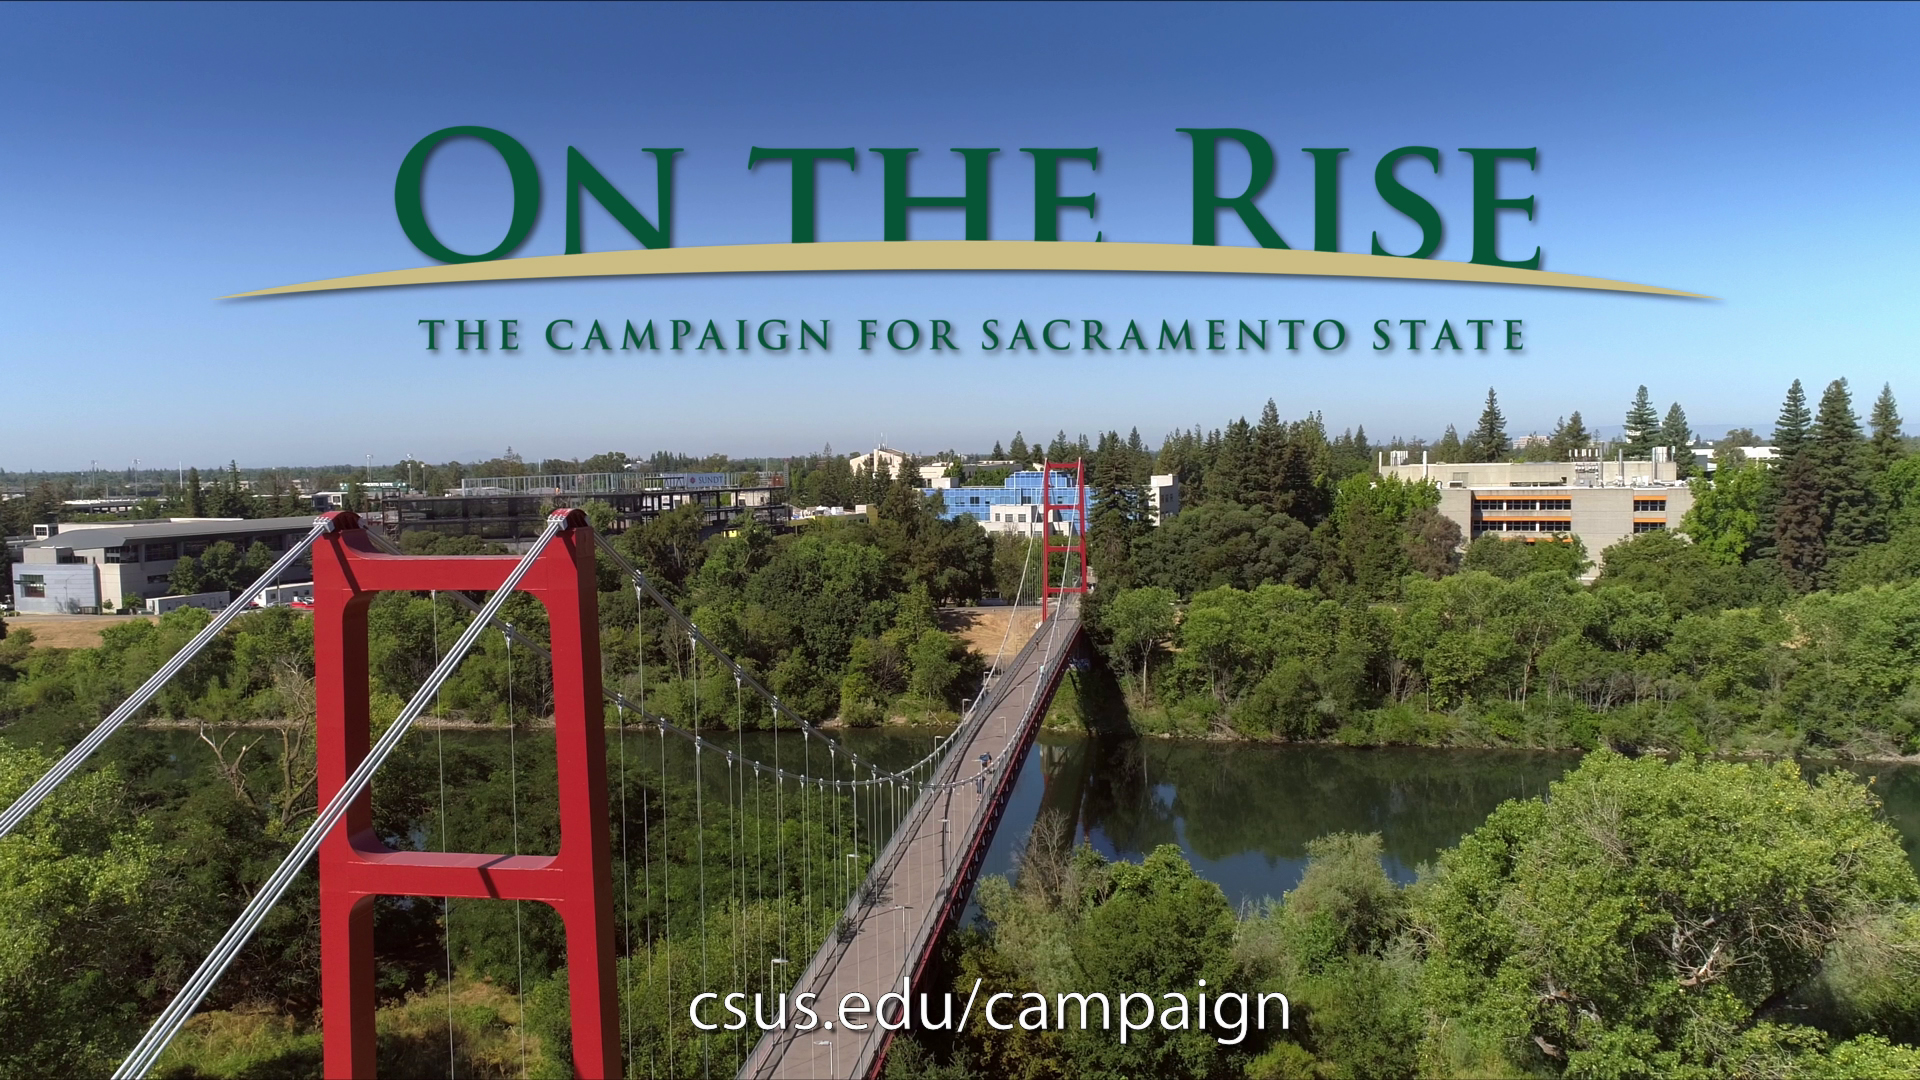 """On The Rise: The Campaign for Sacramento State"" is designed to raise significant support for the University'."